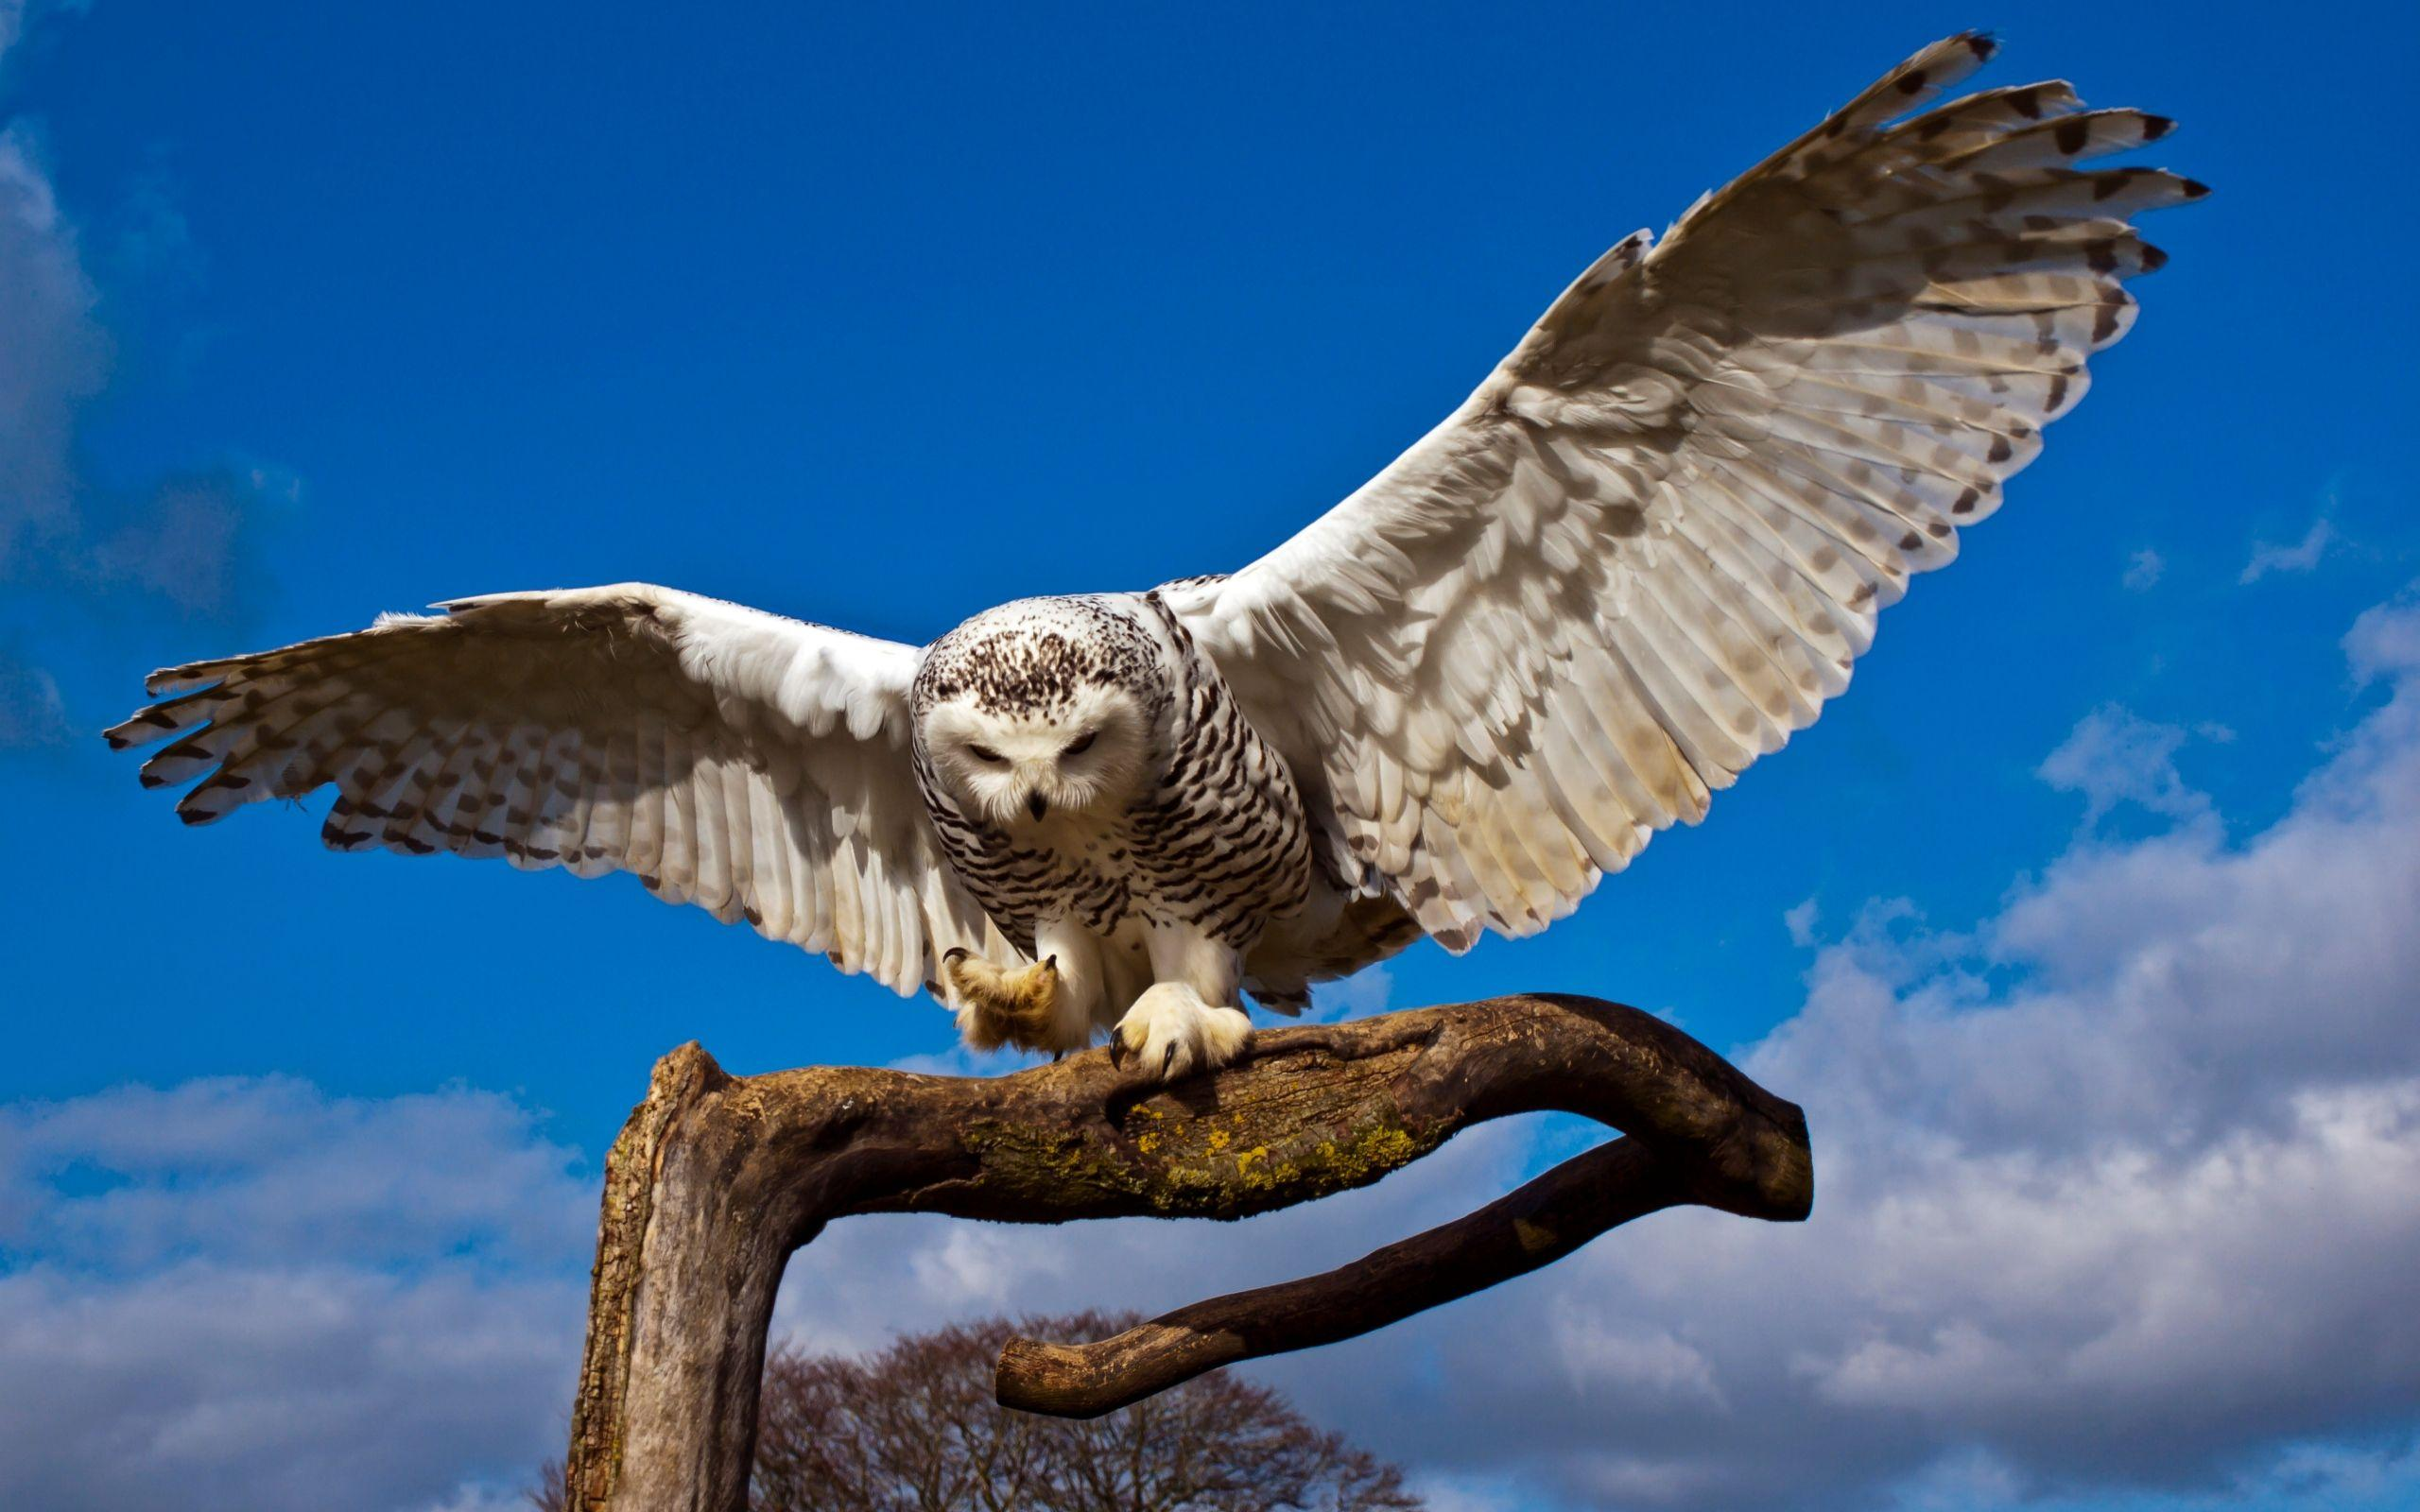 Snowy Owl Spread Wings Desktop Background HD 2560x1600 | deskbg.com